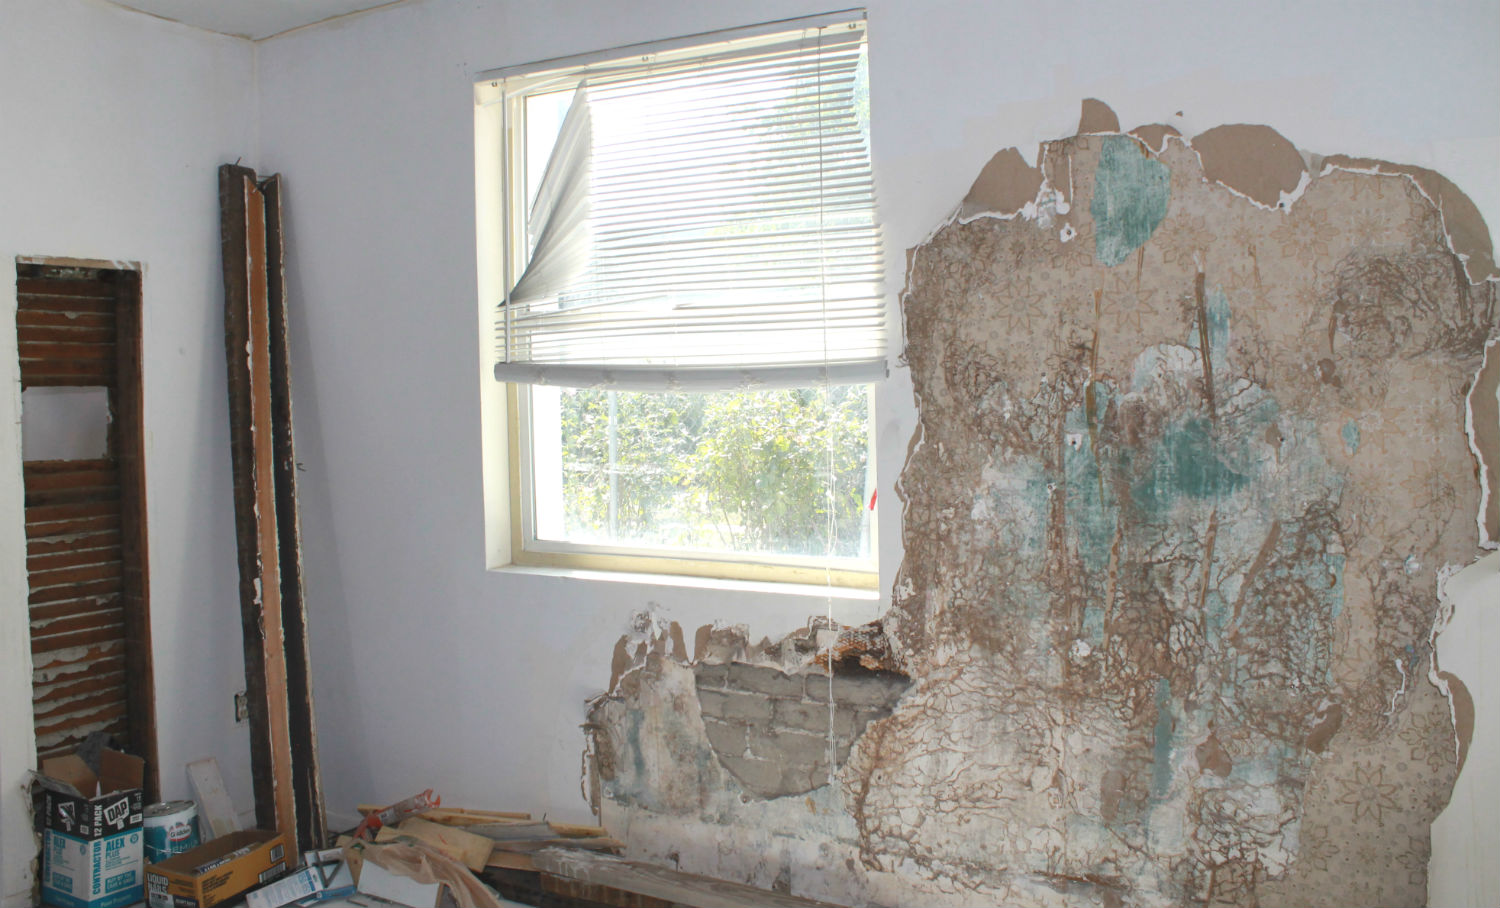 Monterey Park Rental Property Being Restored After Mold Remediation Services